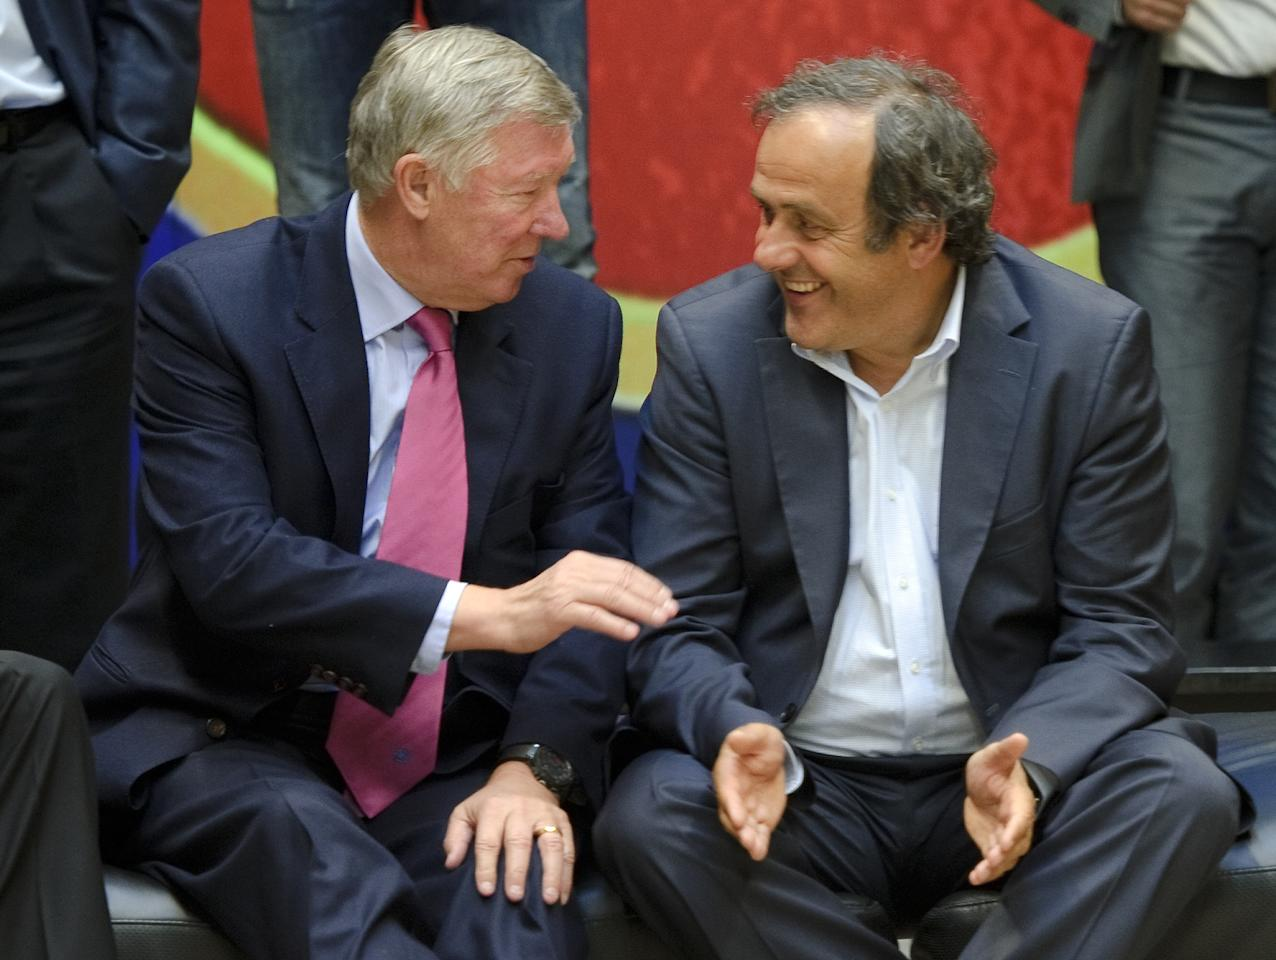 UEFA president Michel Platini (R) talks with Manchester United's manager Alex Ferguson as they pose for a group picture, at the 13th Elite Club Coaches Forum, in Nyon, on August 31, 2011. Europe's leading club coaches are invited at the event to discuss the latest trends in club football and express their views on major issues affecting top club football.  AFP PHOTO / FABRICE COFFRINI (Photo credit should read FABRICE COFFRINI/AFP/Getty Images)